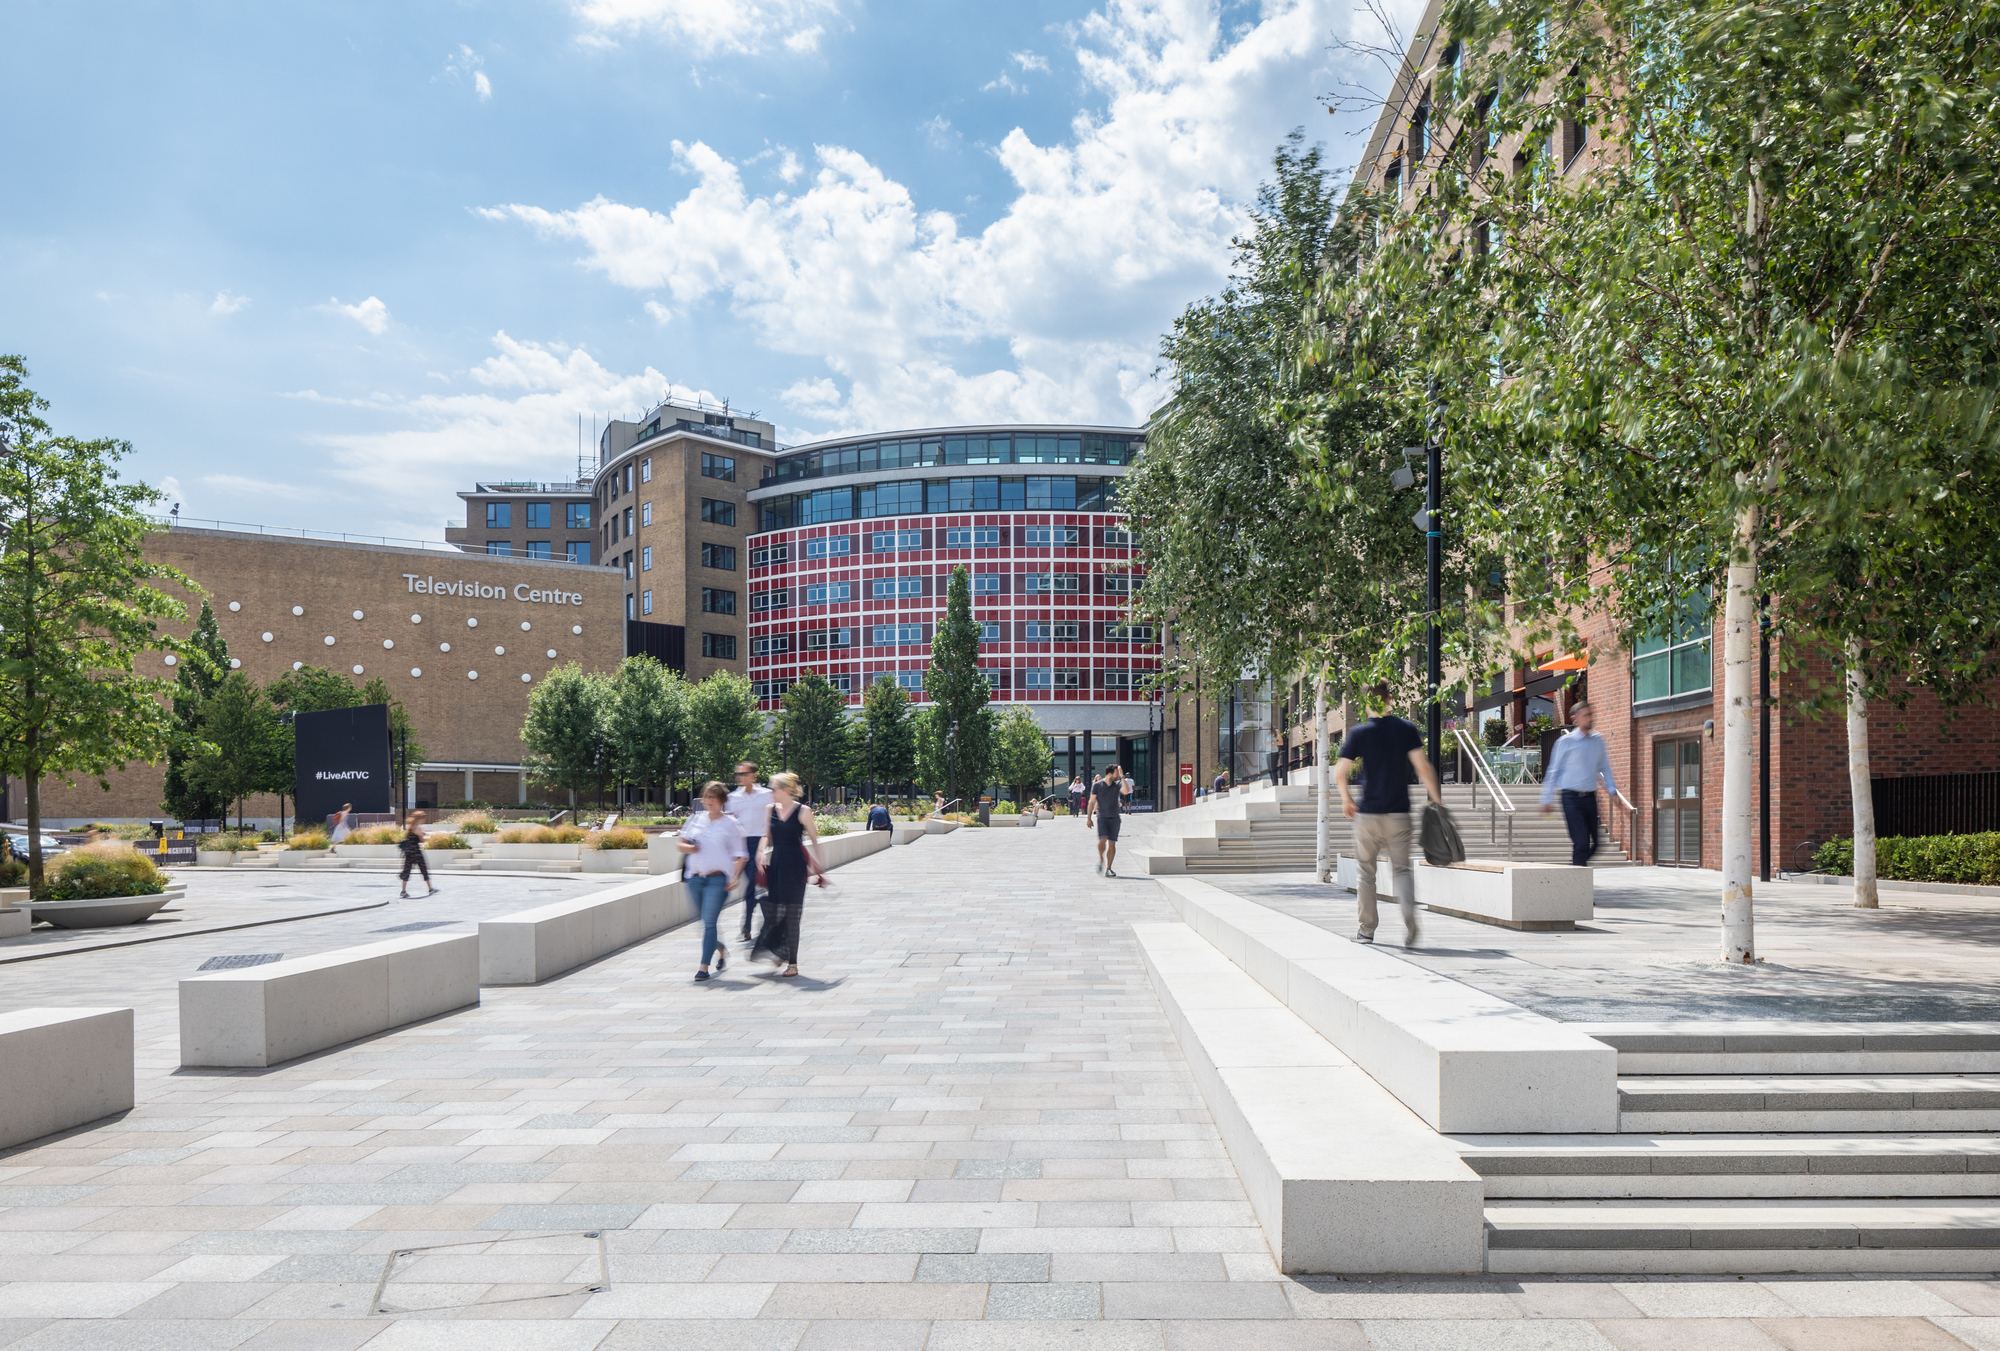 Some of the award winning spaces at the BBC TV centre in London are open to the public.